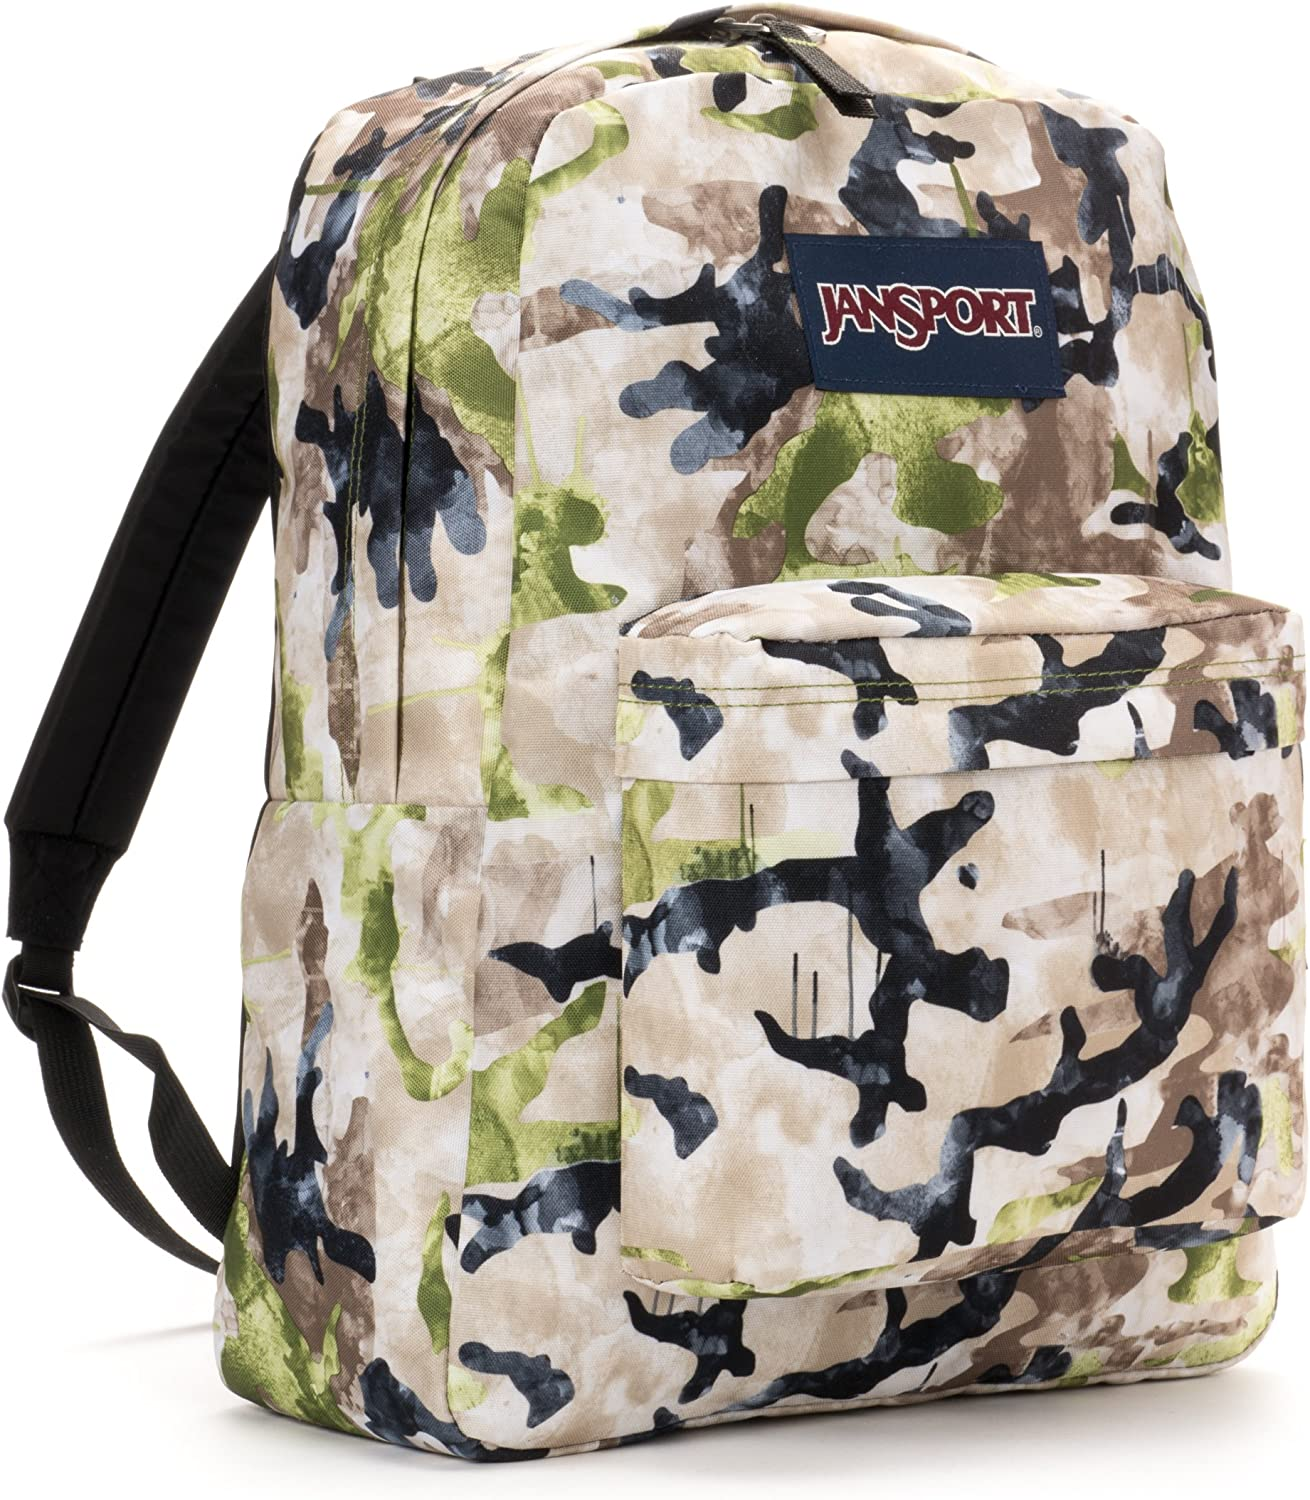 Jansport Super Break Causal Backpack JS-43501J1T6